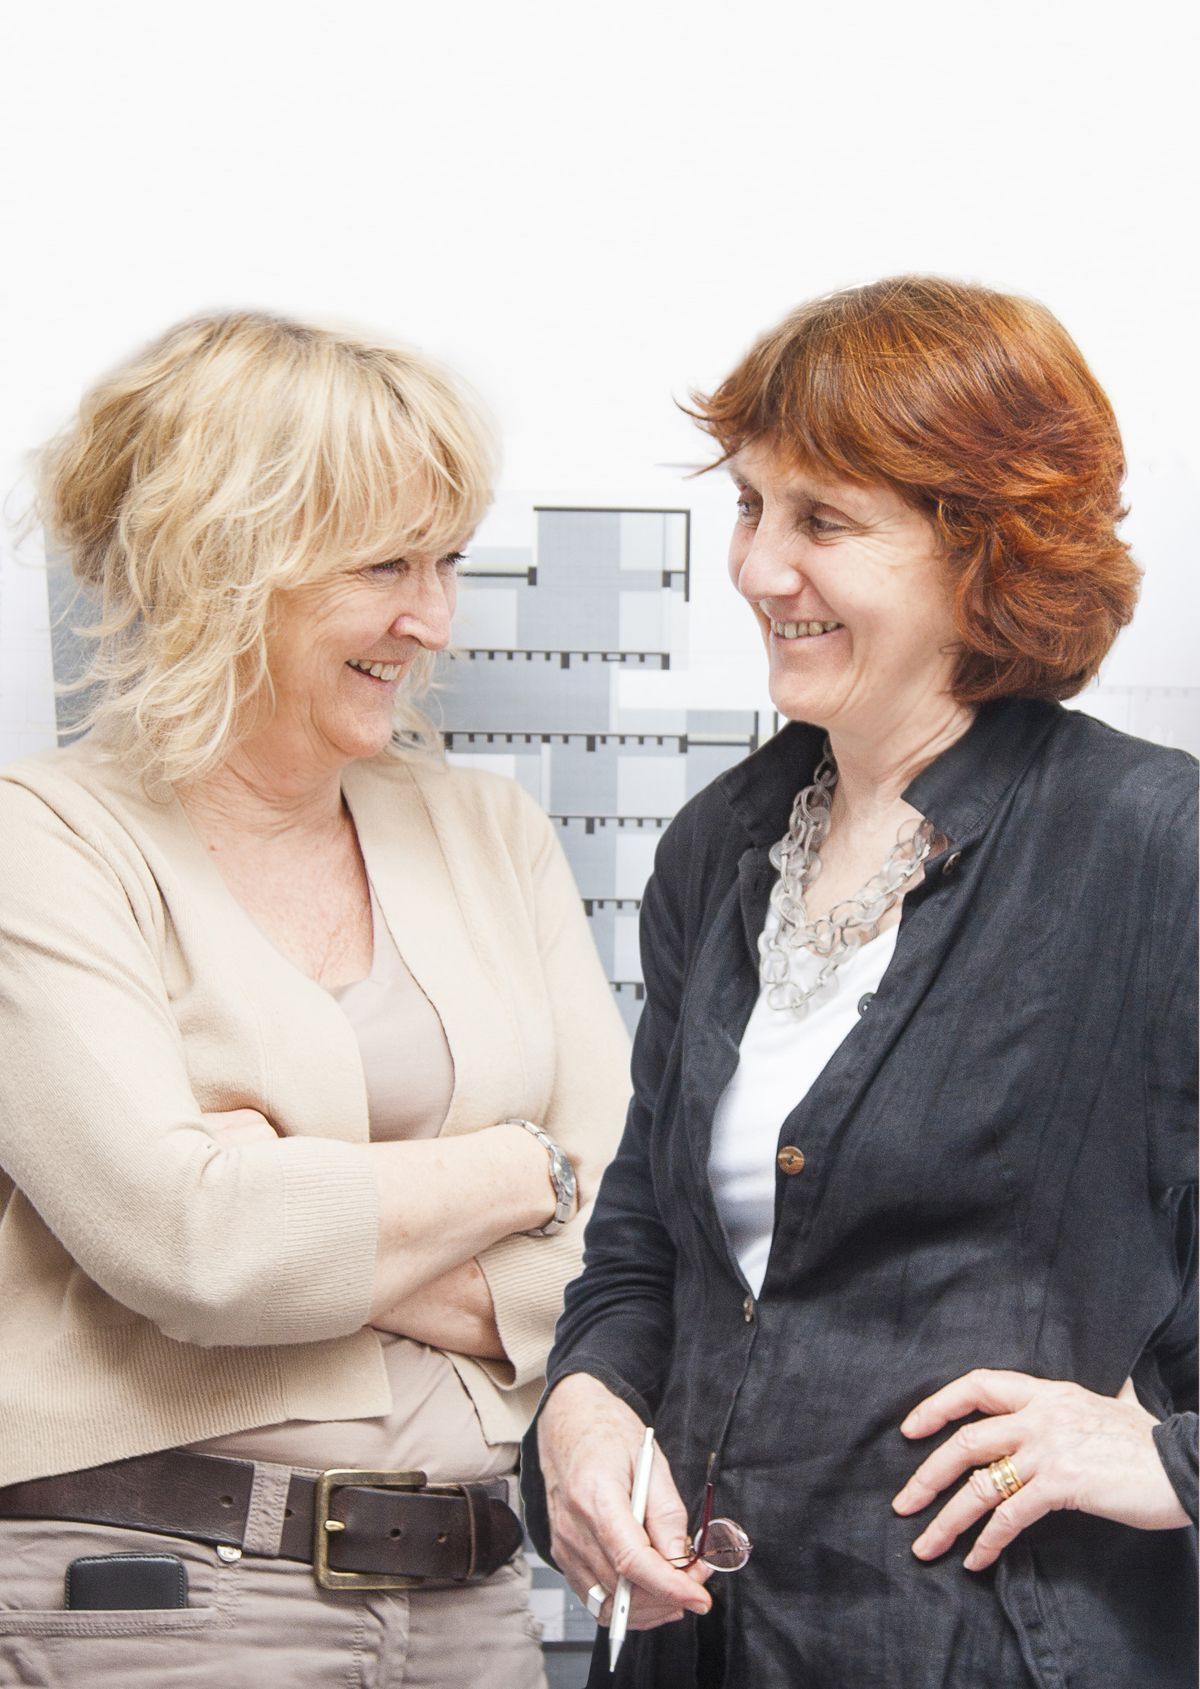 Two women facing each other in front of an architectural drawing.